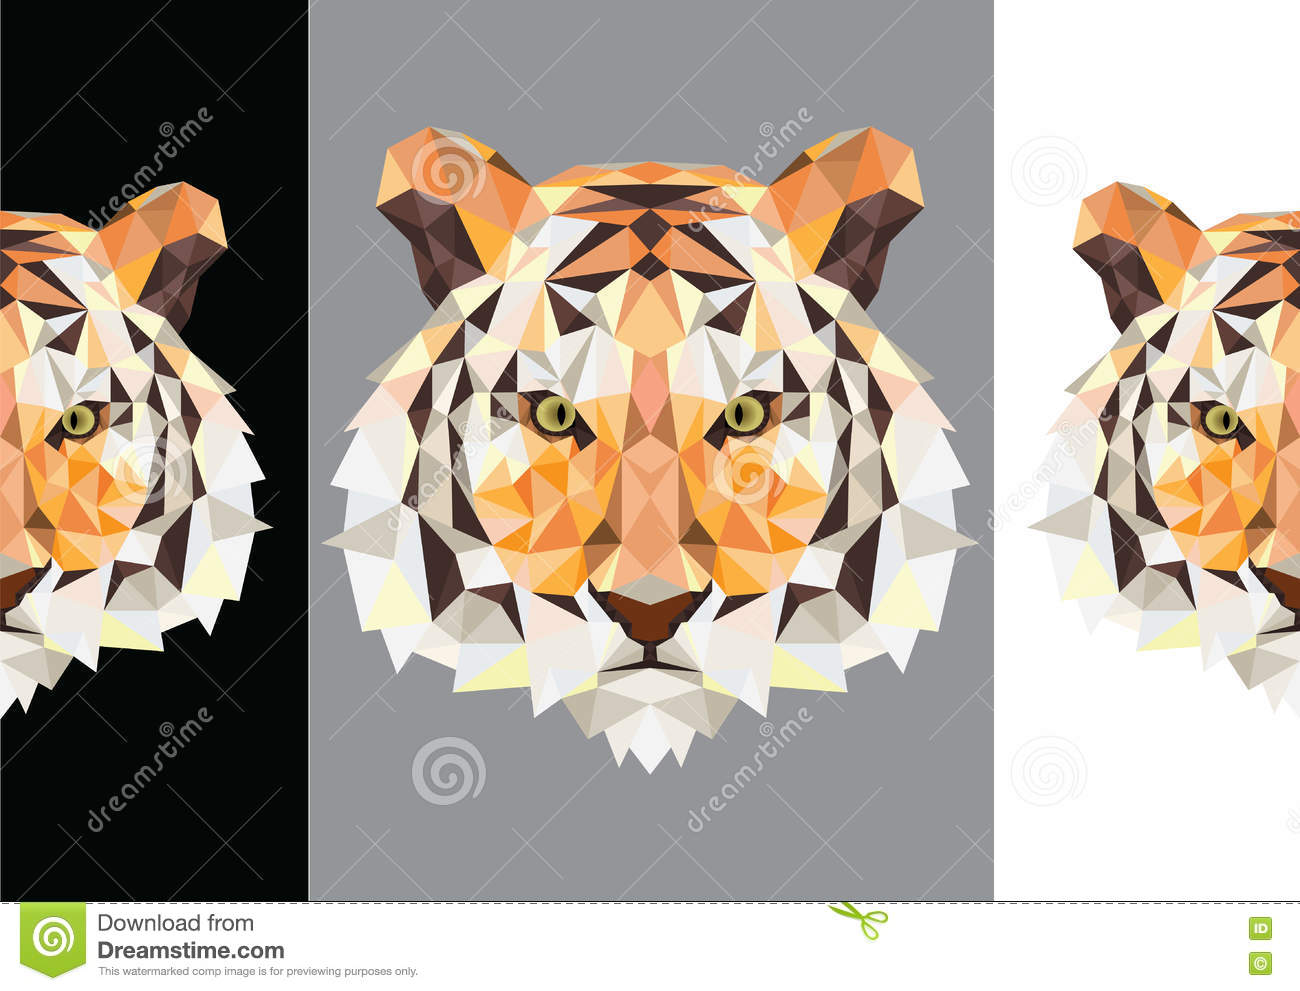 Tiger polygon